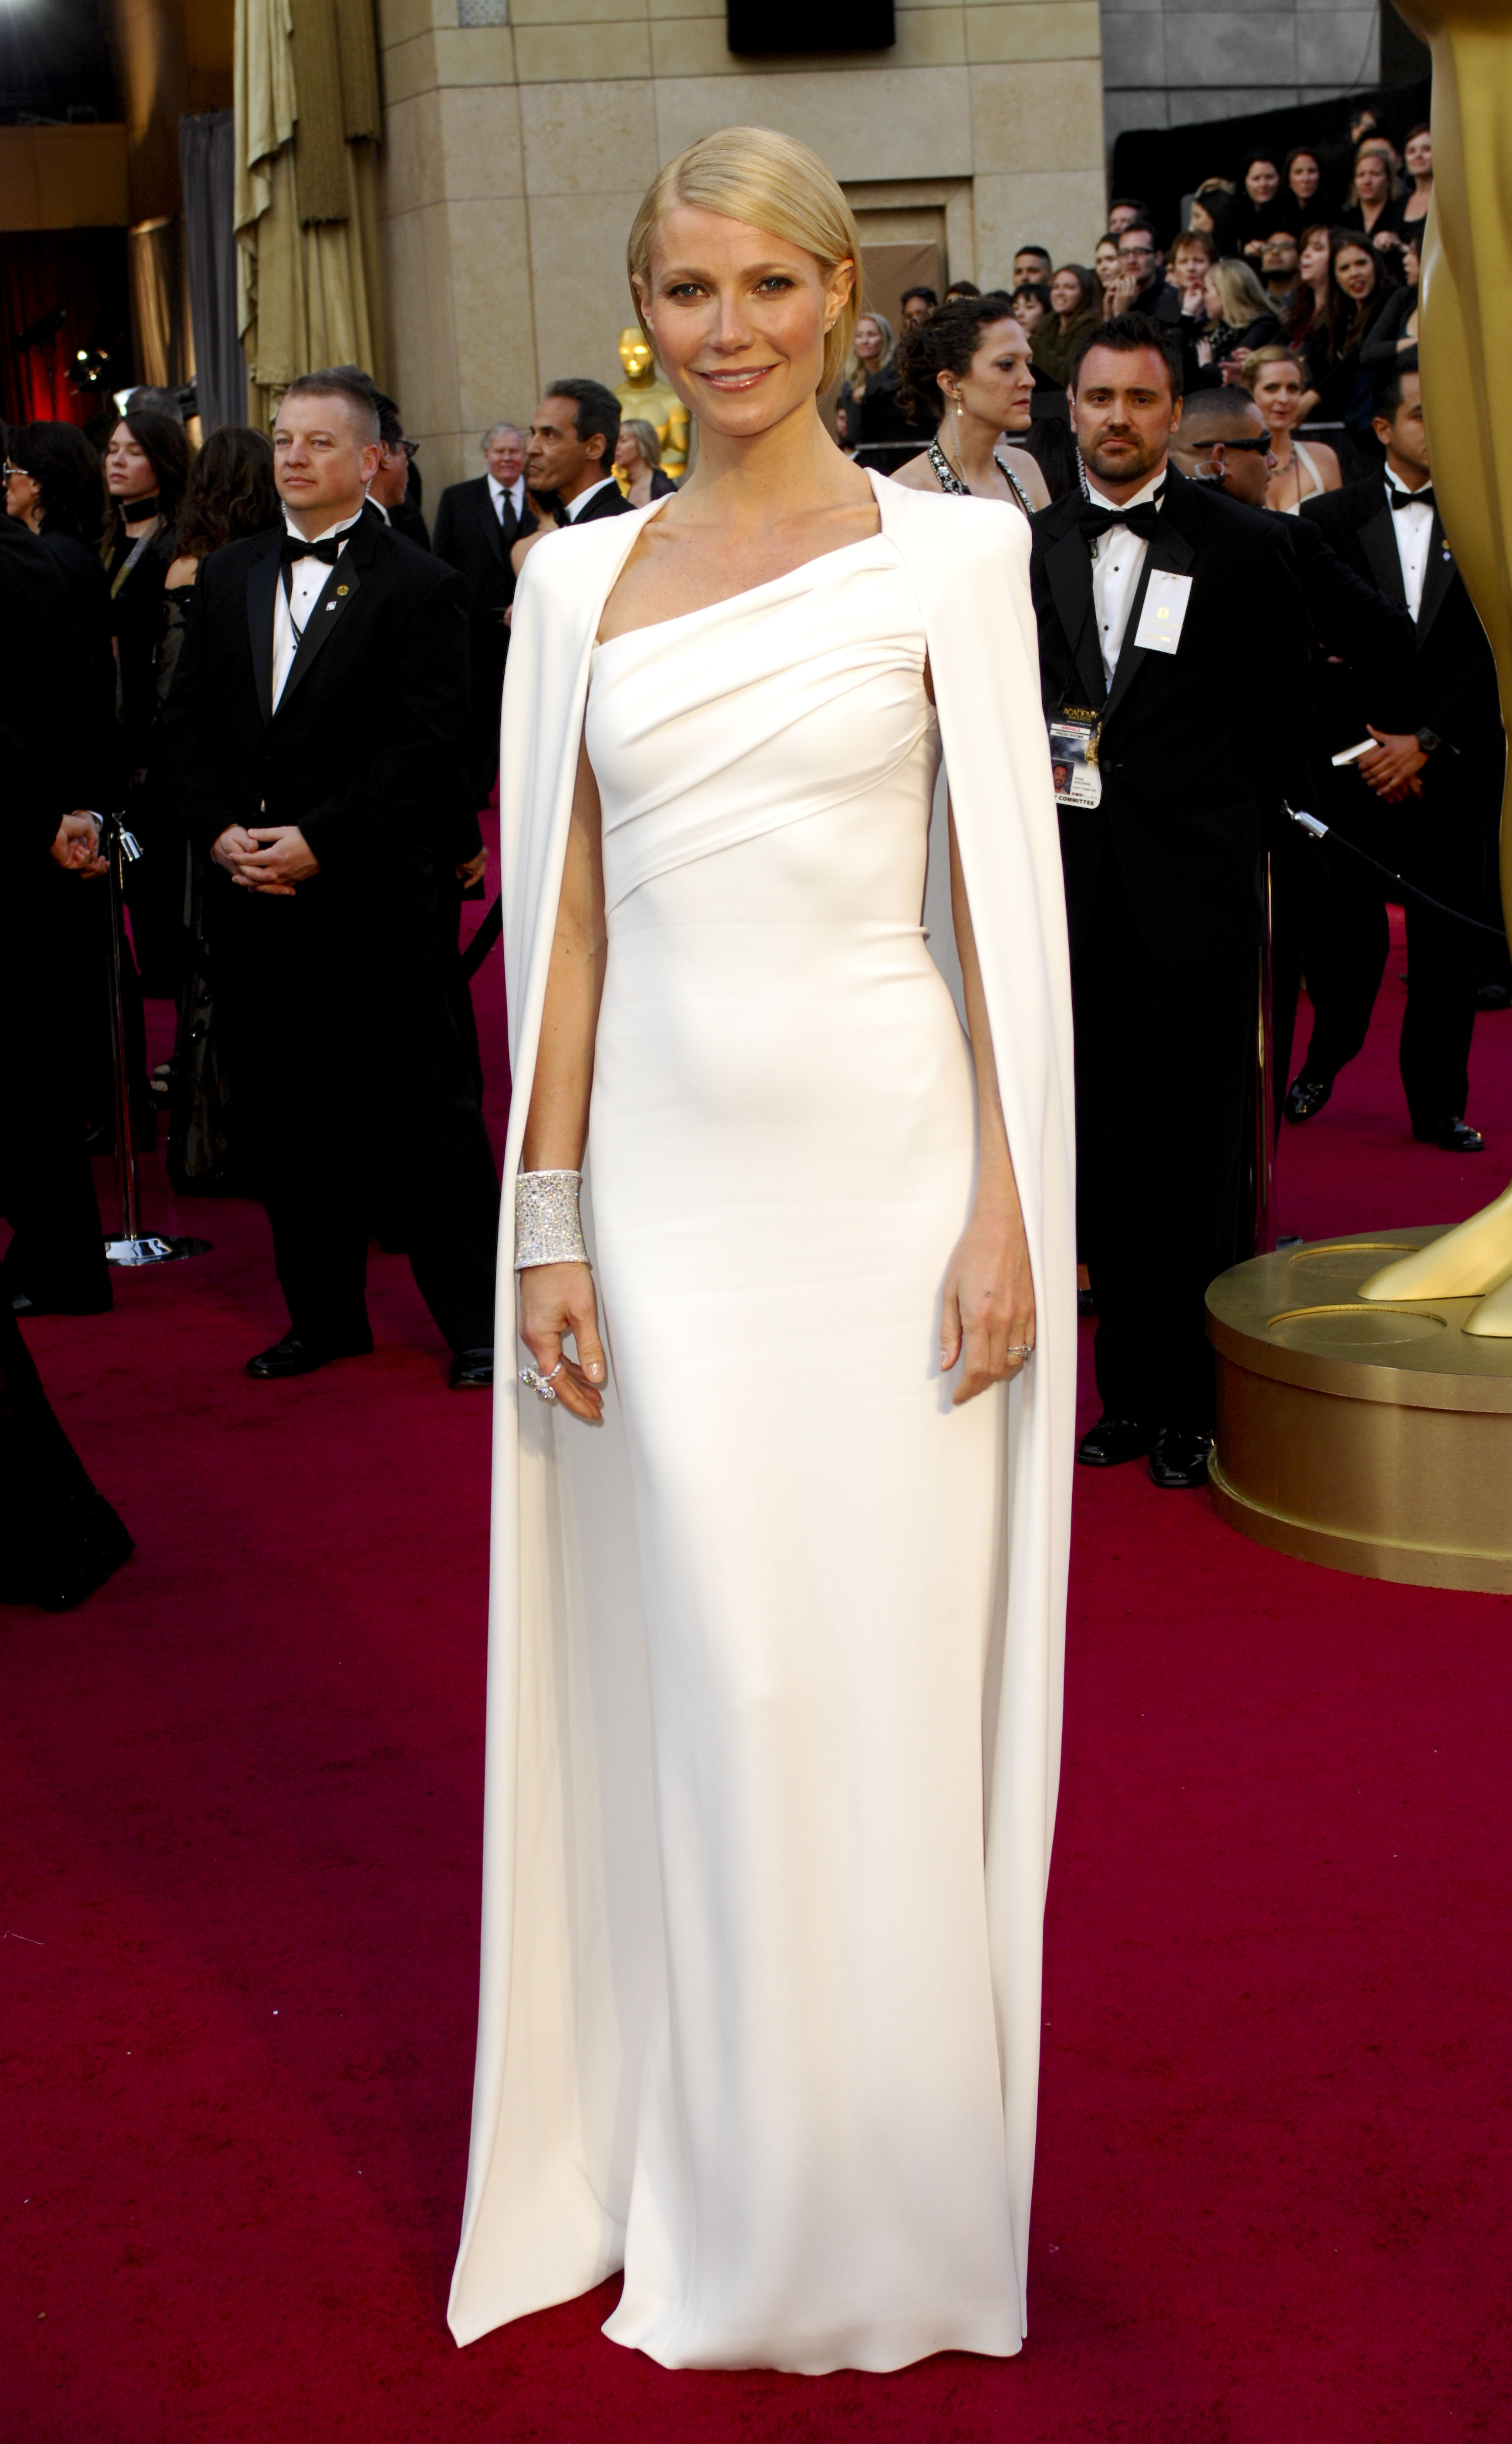 Of dressing for the red-carpet, Ford loves Gwyneth PaltrowÕs approach, nting the white look she wore to the 2012 Oscars, Òbefore everyone was wearing capesÉShe is not afraid.Ó